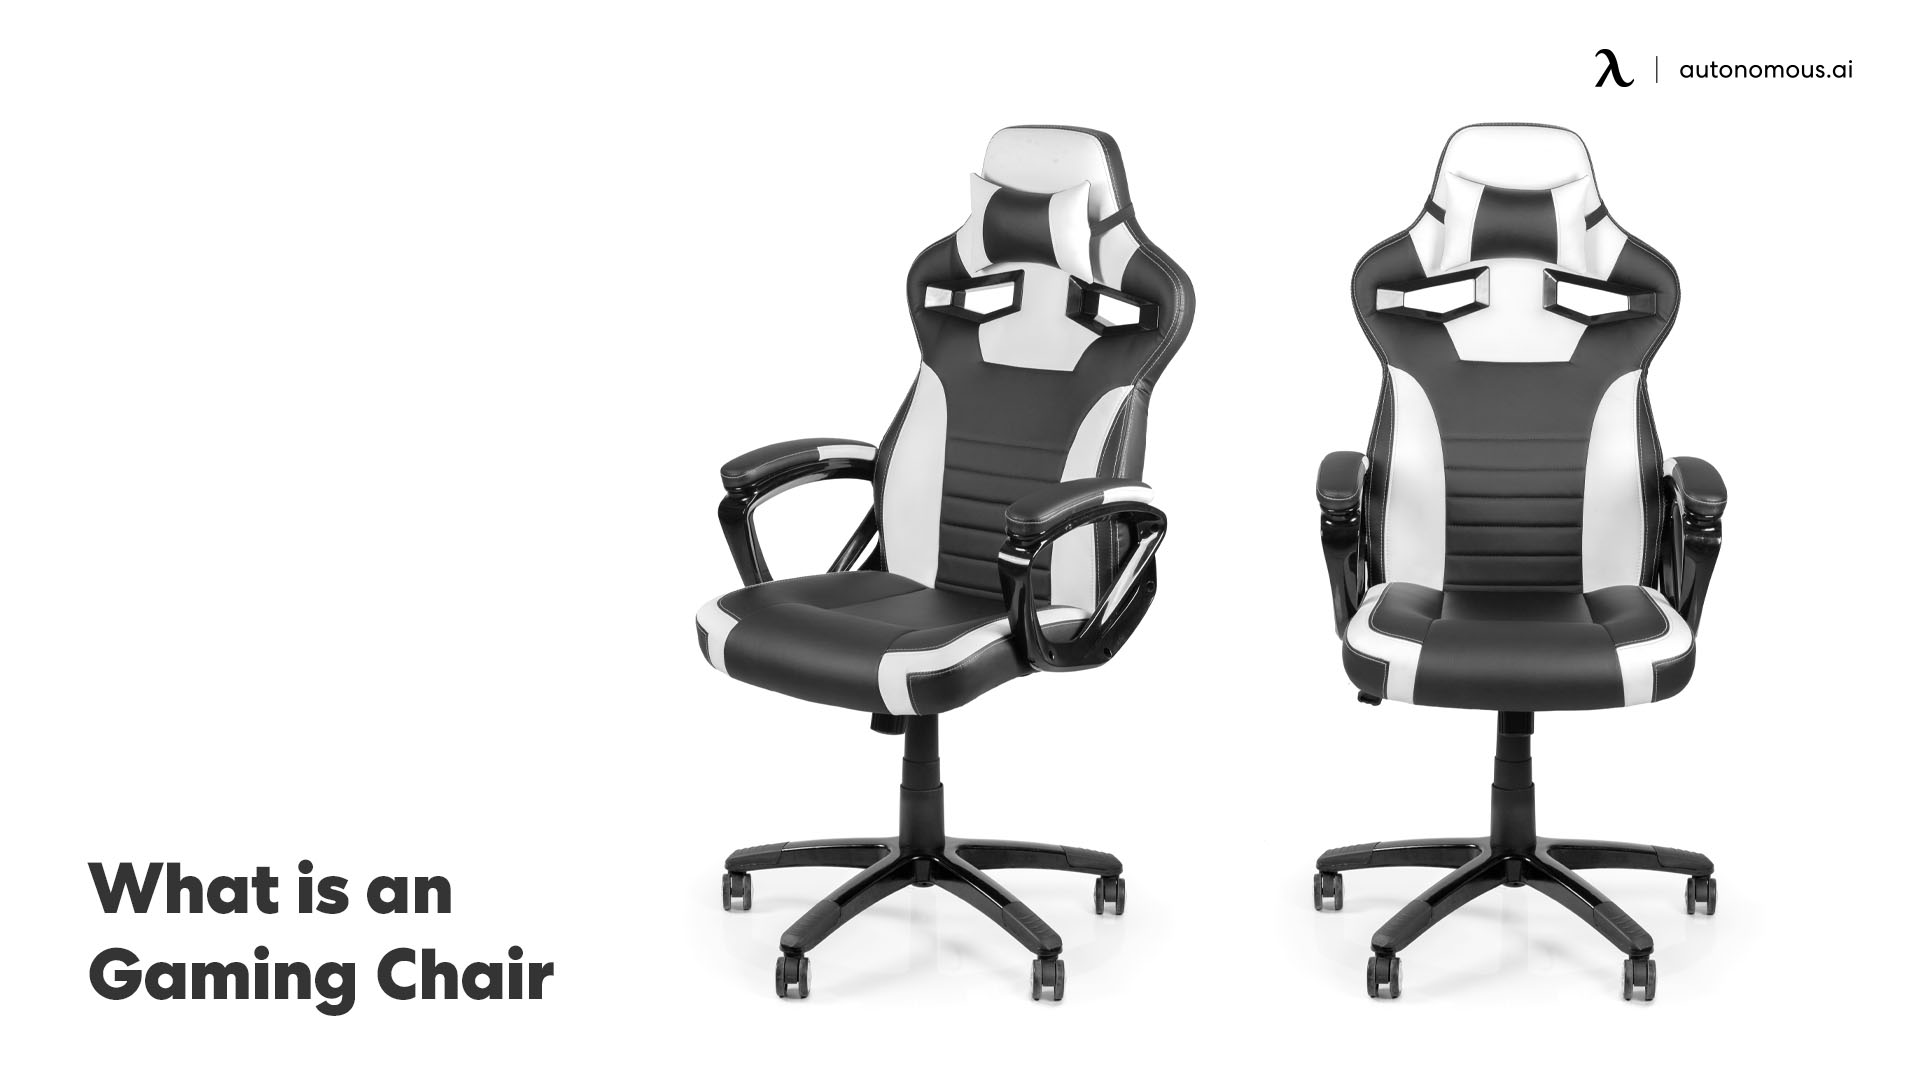 What Is a Gaming Chair?